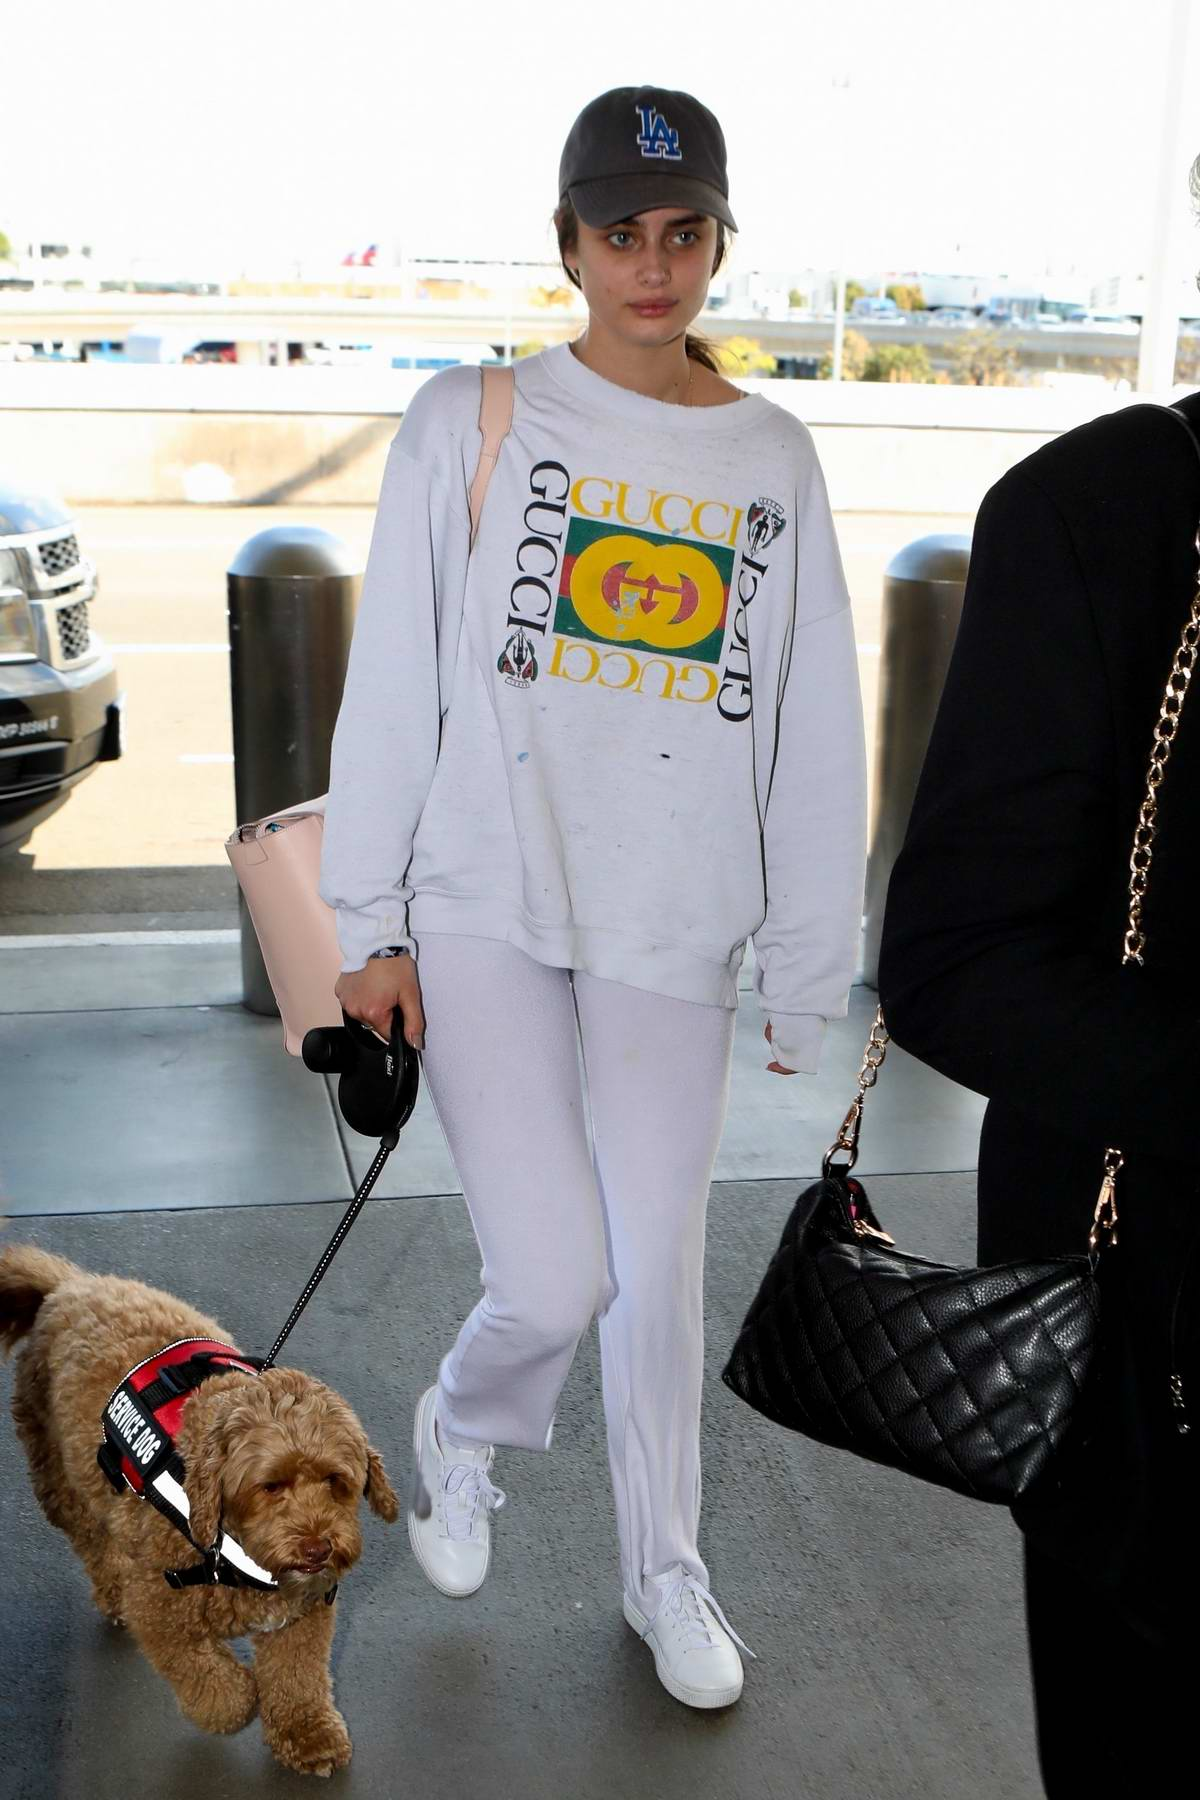 Taylor Hill and her service dog arrives to board a flight at LAX Airport in Los Angeles